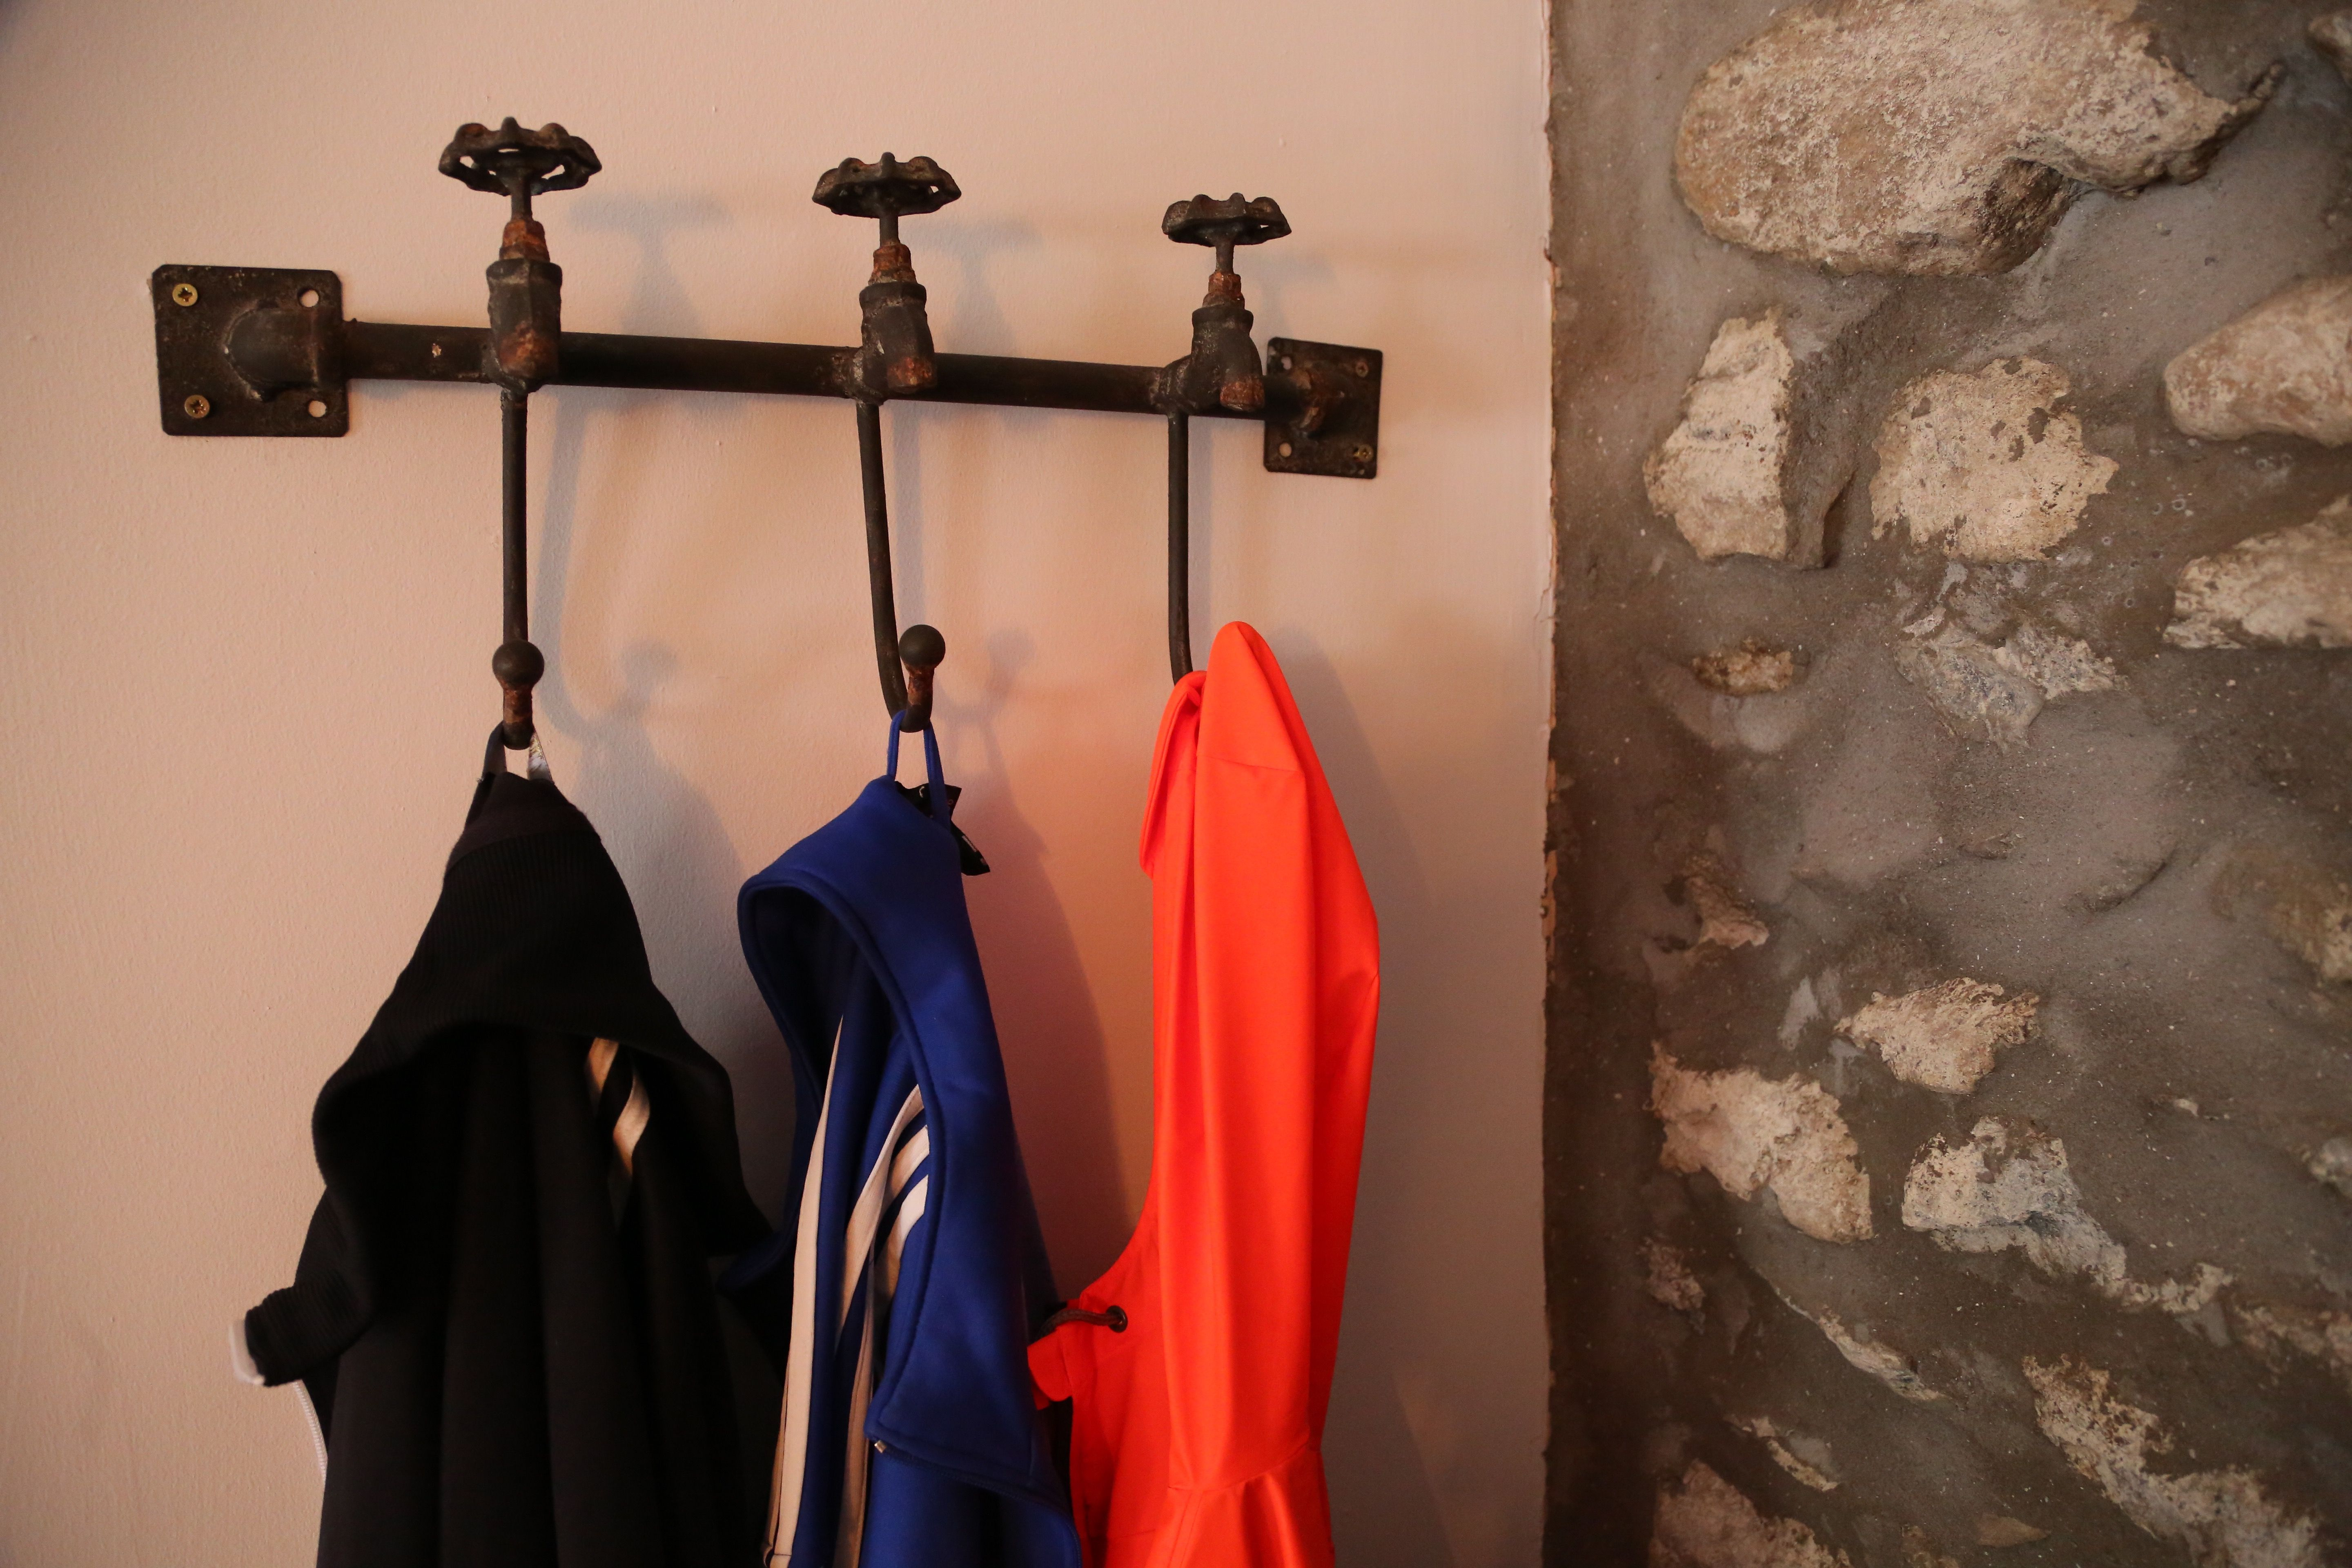 industrial taps up-cycled into a clothes hanger